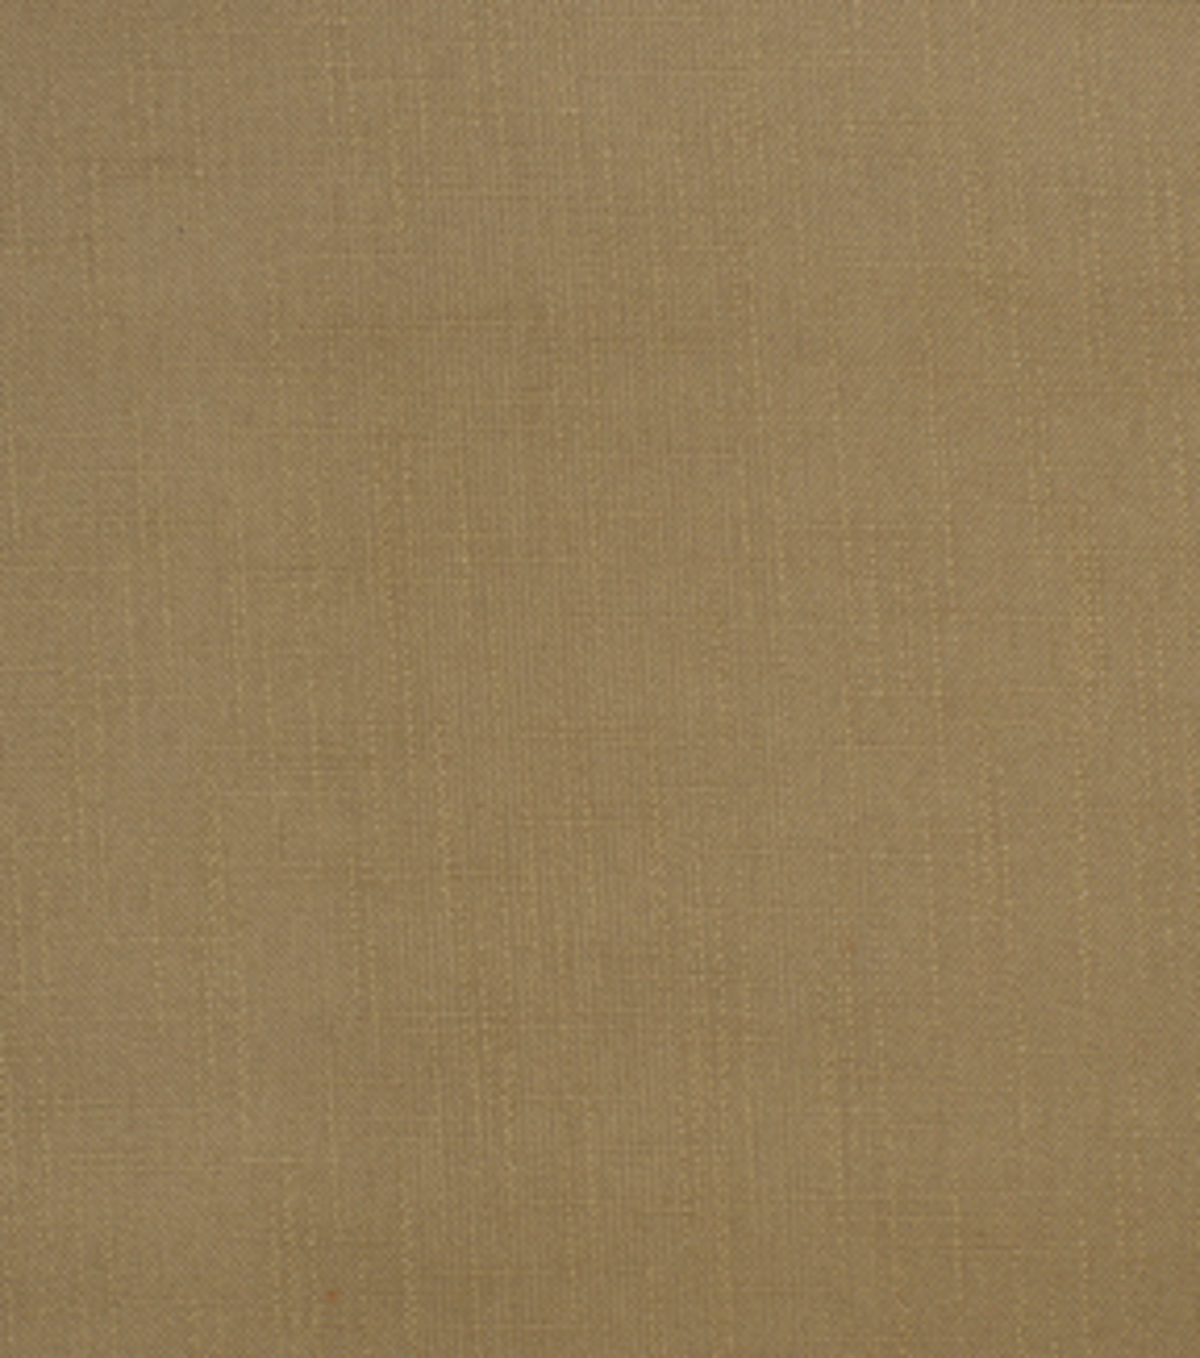 Home Decor 8\u0022x8\u0022 Fabric Swatch-Signature Series Gallantry Toast